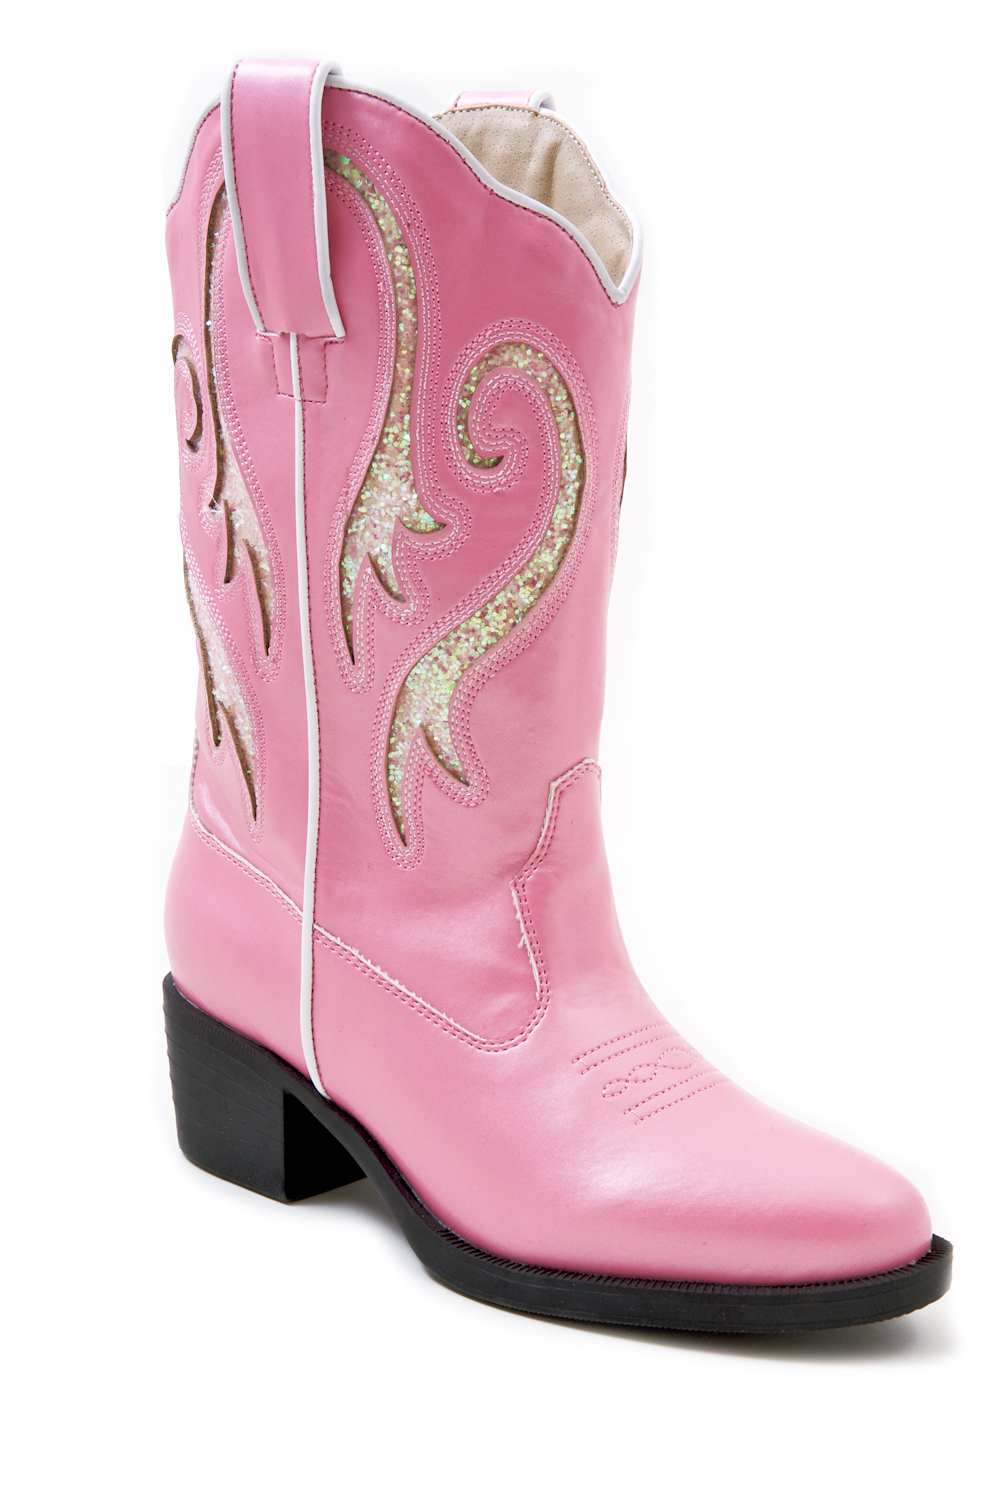 Girls cowboy boots - deals on 1001 Blocks